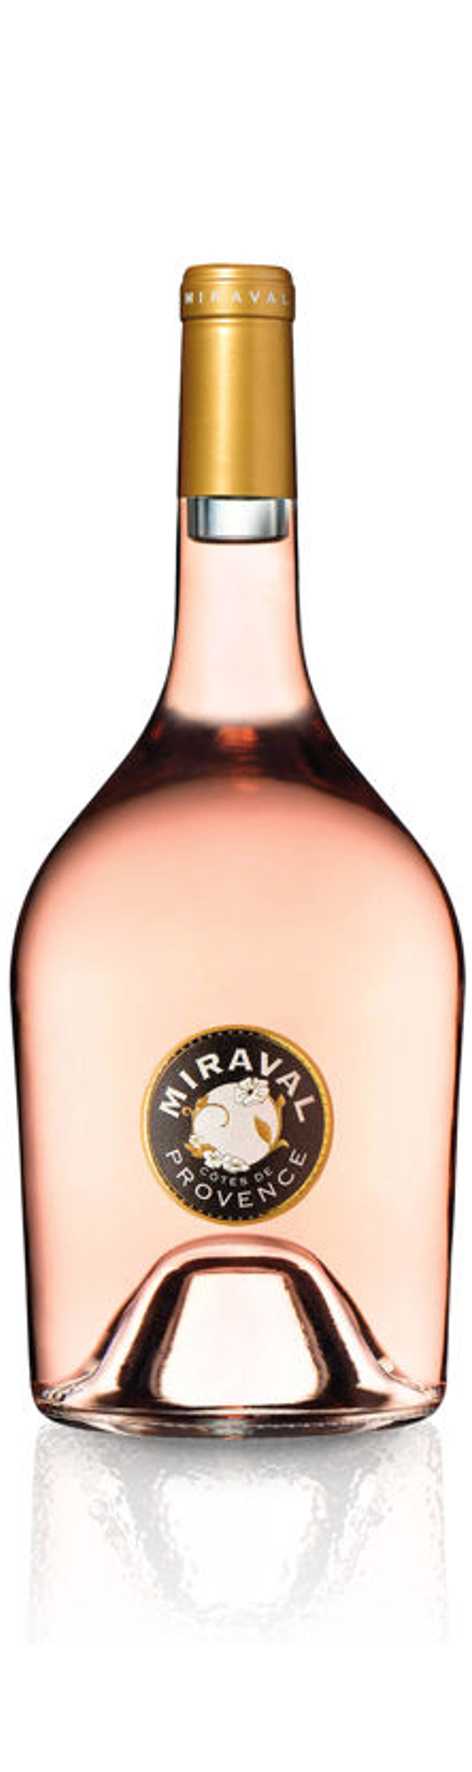 Miraval Rose Provence